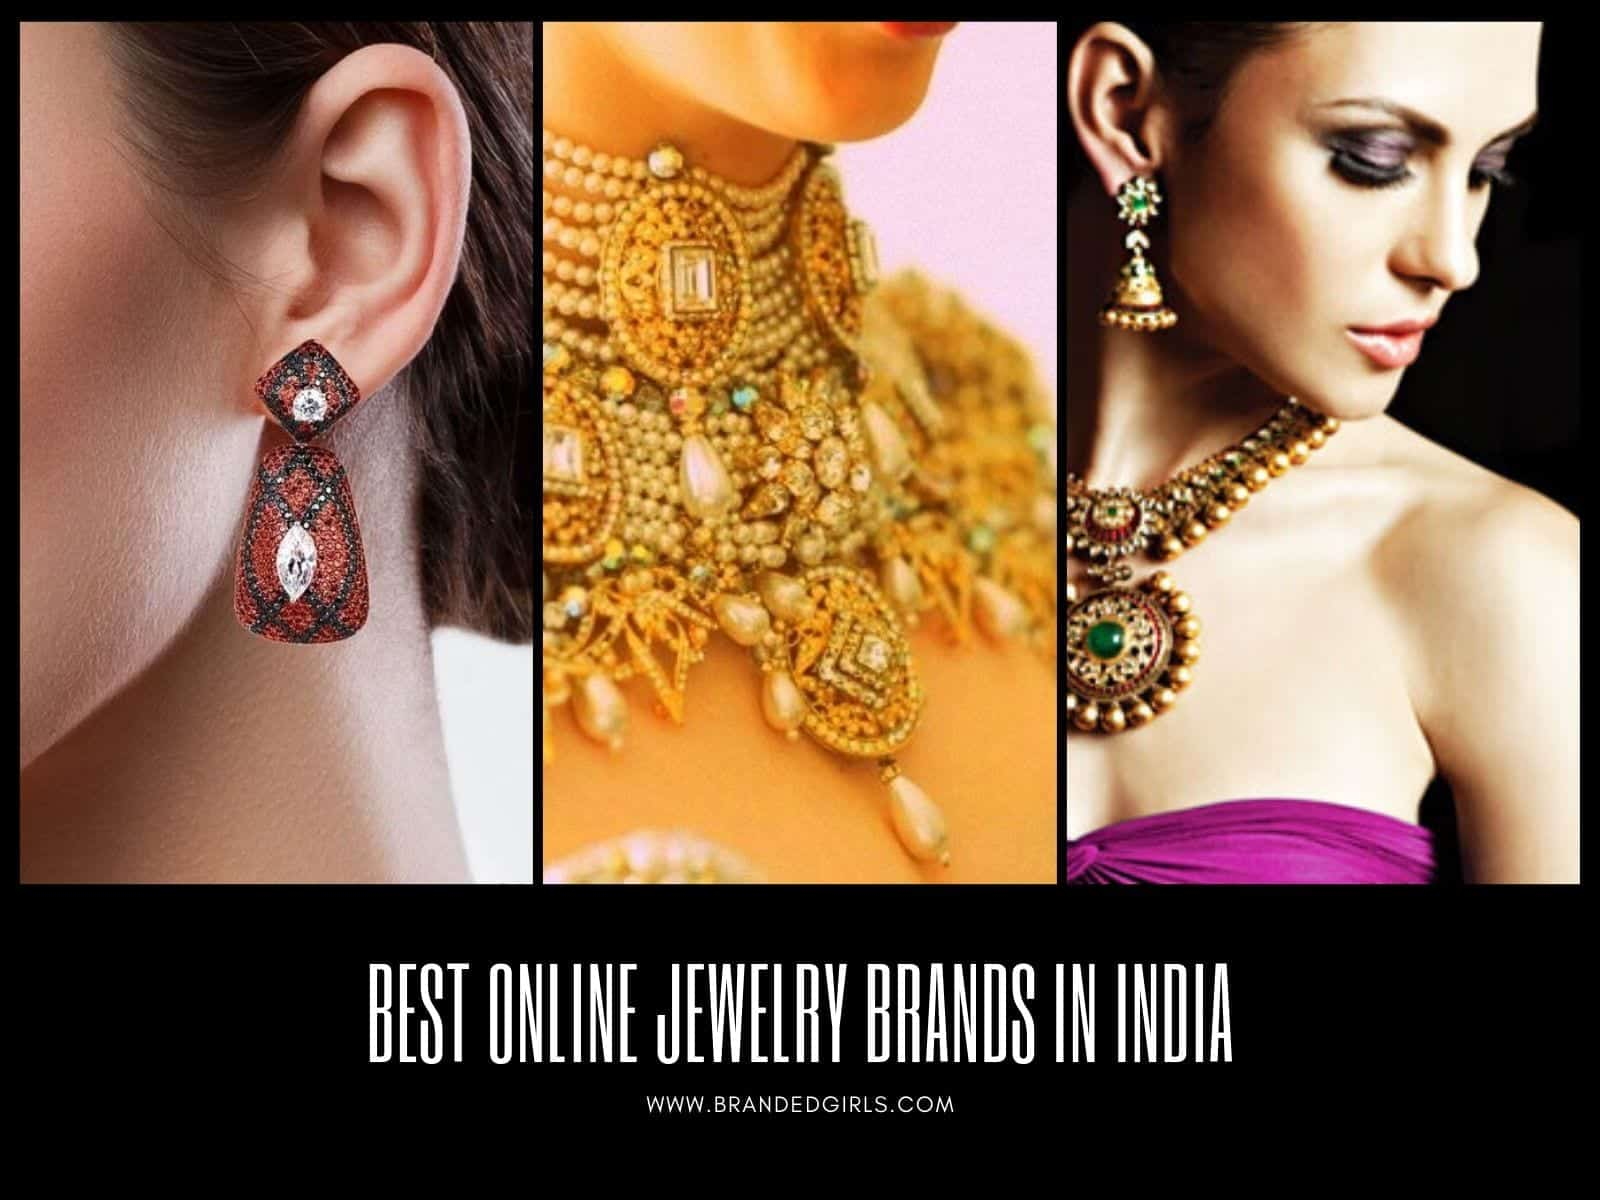 Online-Jewelry-Brands-In-India Top Ten Online Jewelry Brands In India 2019